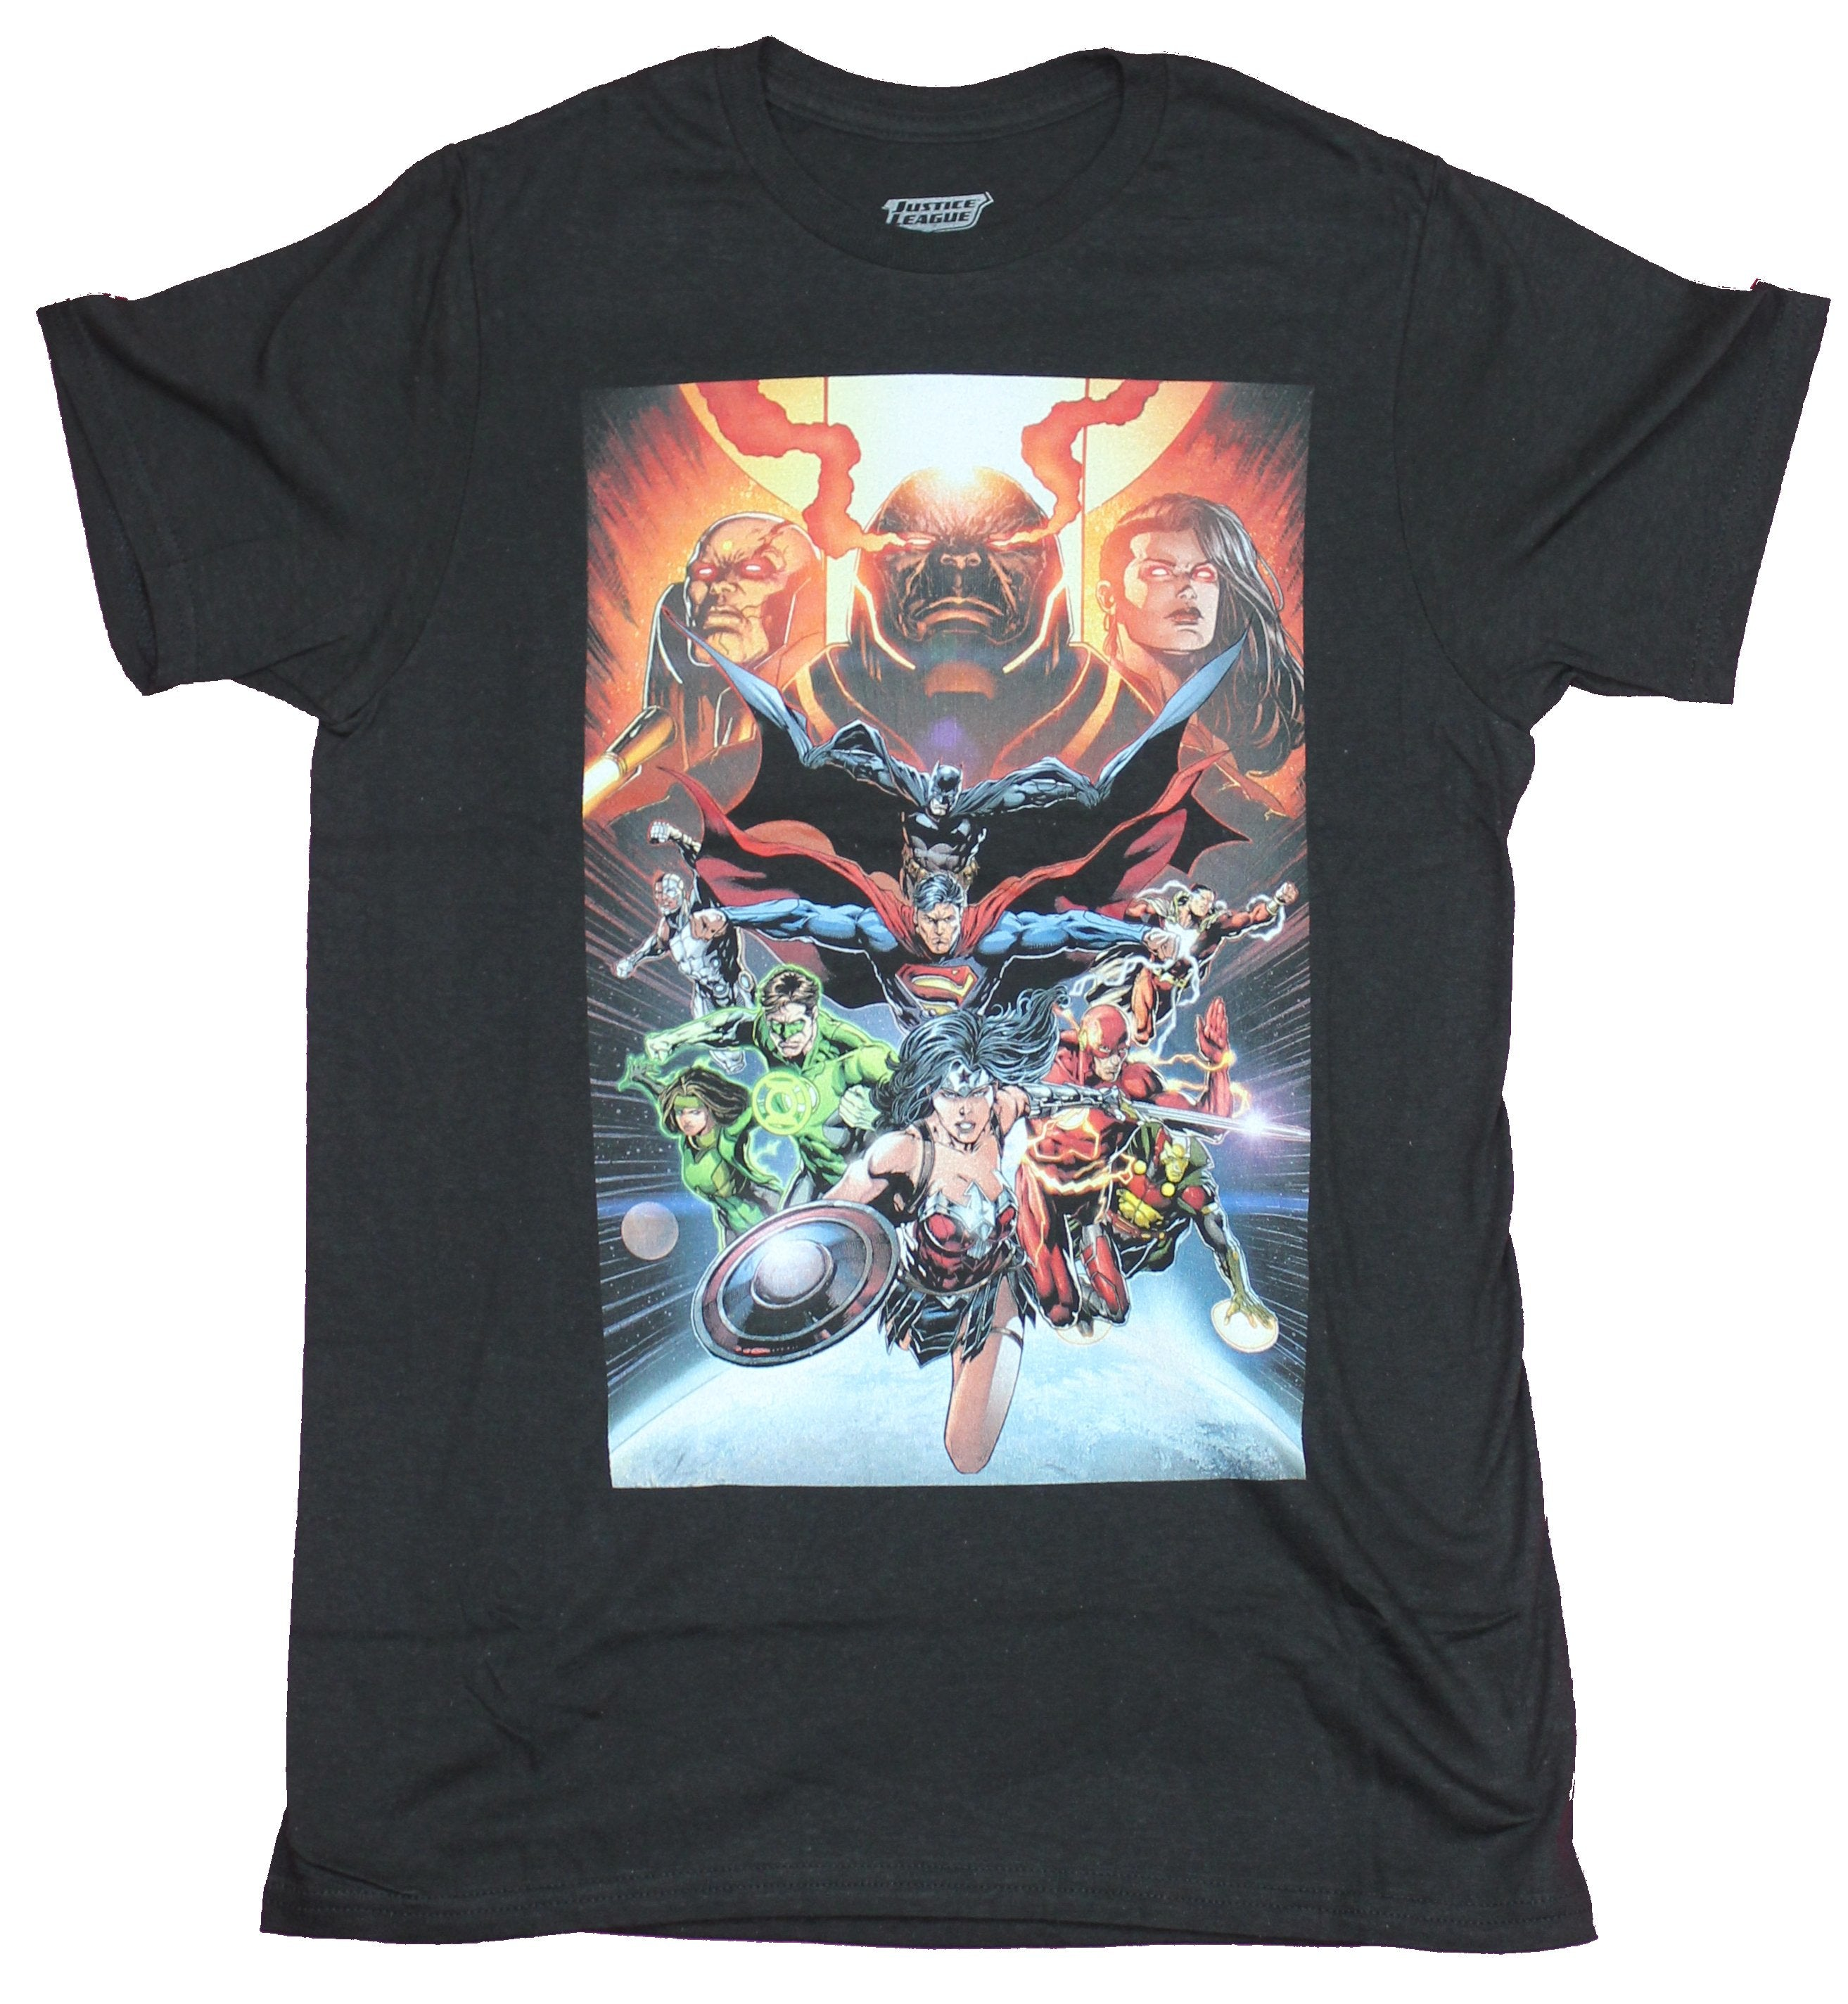 Justice League Mens  T-Shirt - Full Team Under The Eyes of Darkseid